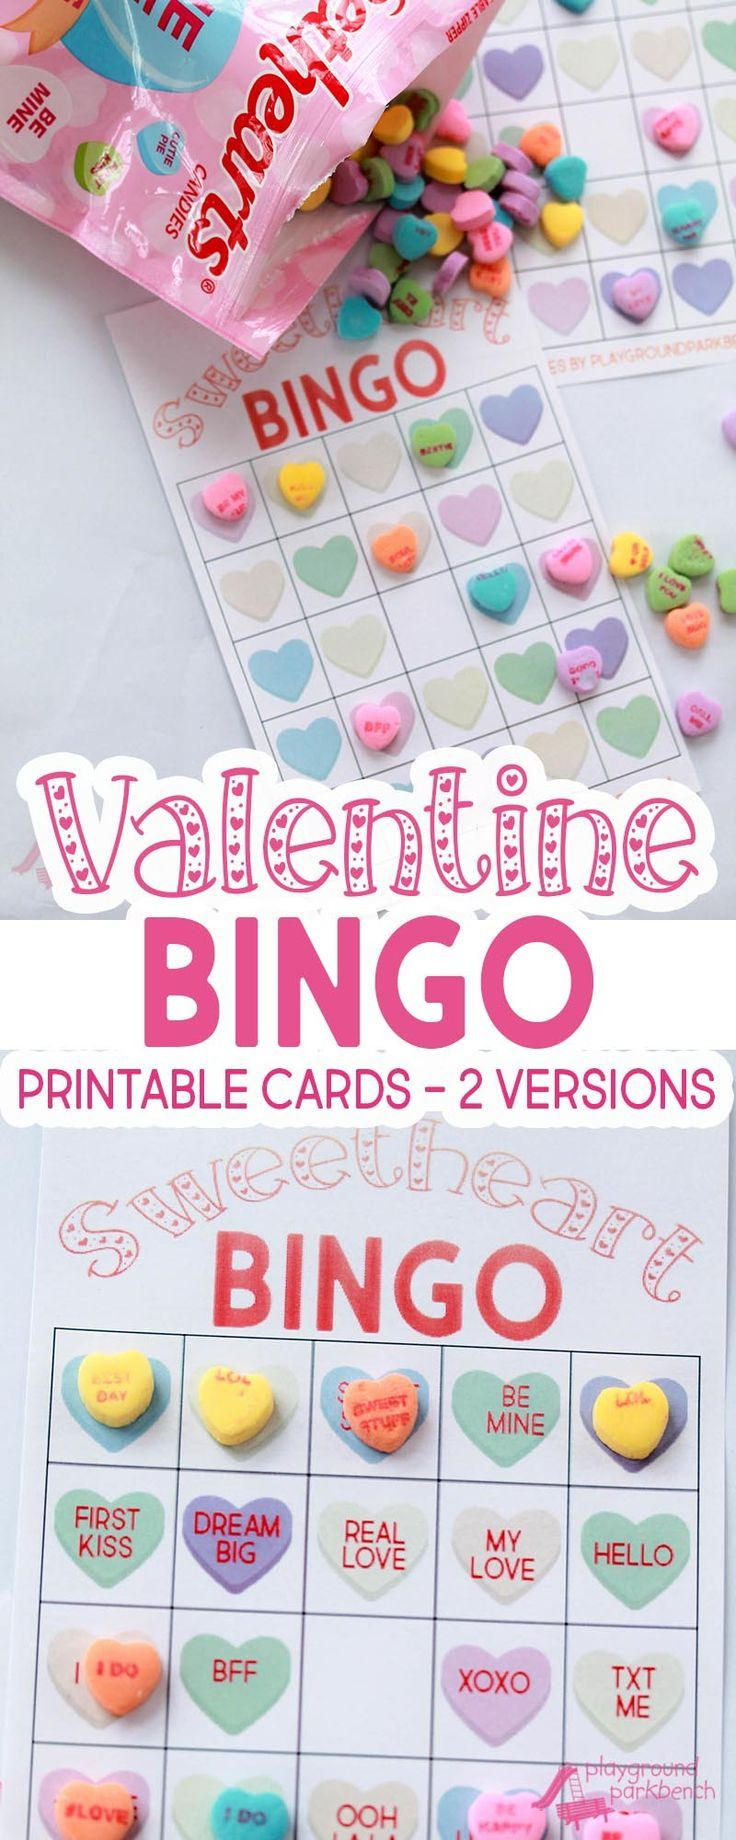 Our Valentine Bingo game printable features 2 different sets of 20 unique game cards. Play the colored hearts version with at your preschool Valentine's Day party, or opt for the conversation heart phrase version for your early readers | Party Games | Valentine's Day | Kids Activities | Candy Hearts | Sweethearts | Room Mom Ideas